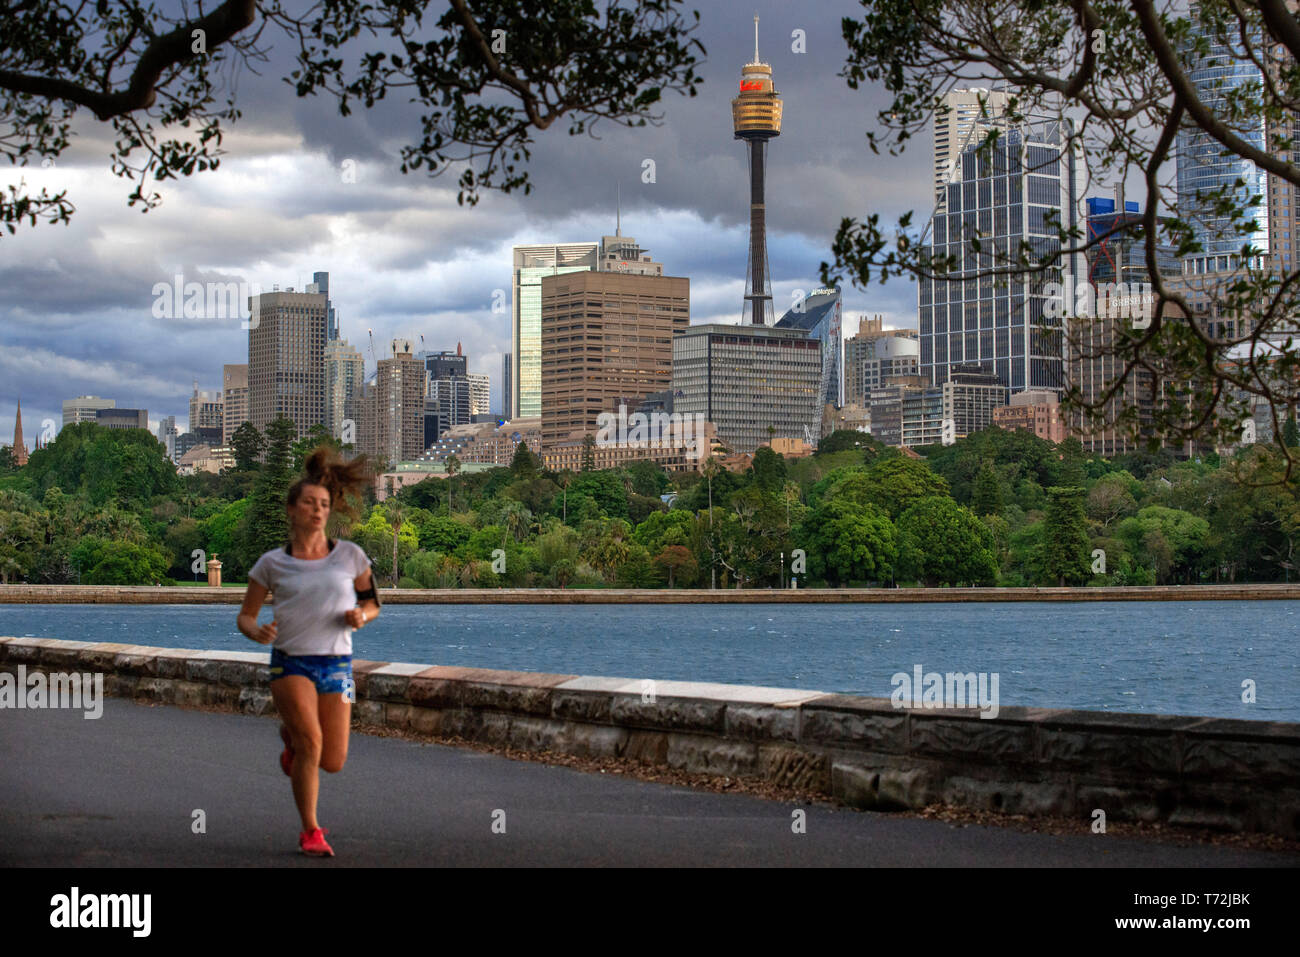 Sydney Tower Eye and woman running in the Circular Quay promenade and botanic gardens Sydney, New South Wales, Australia - Stock Image